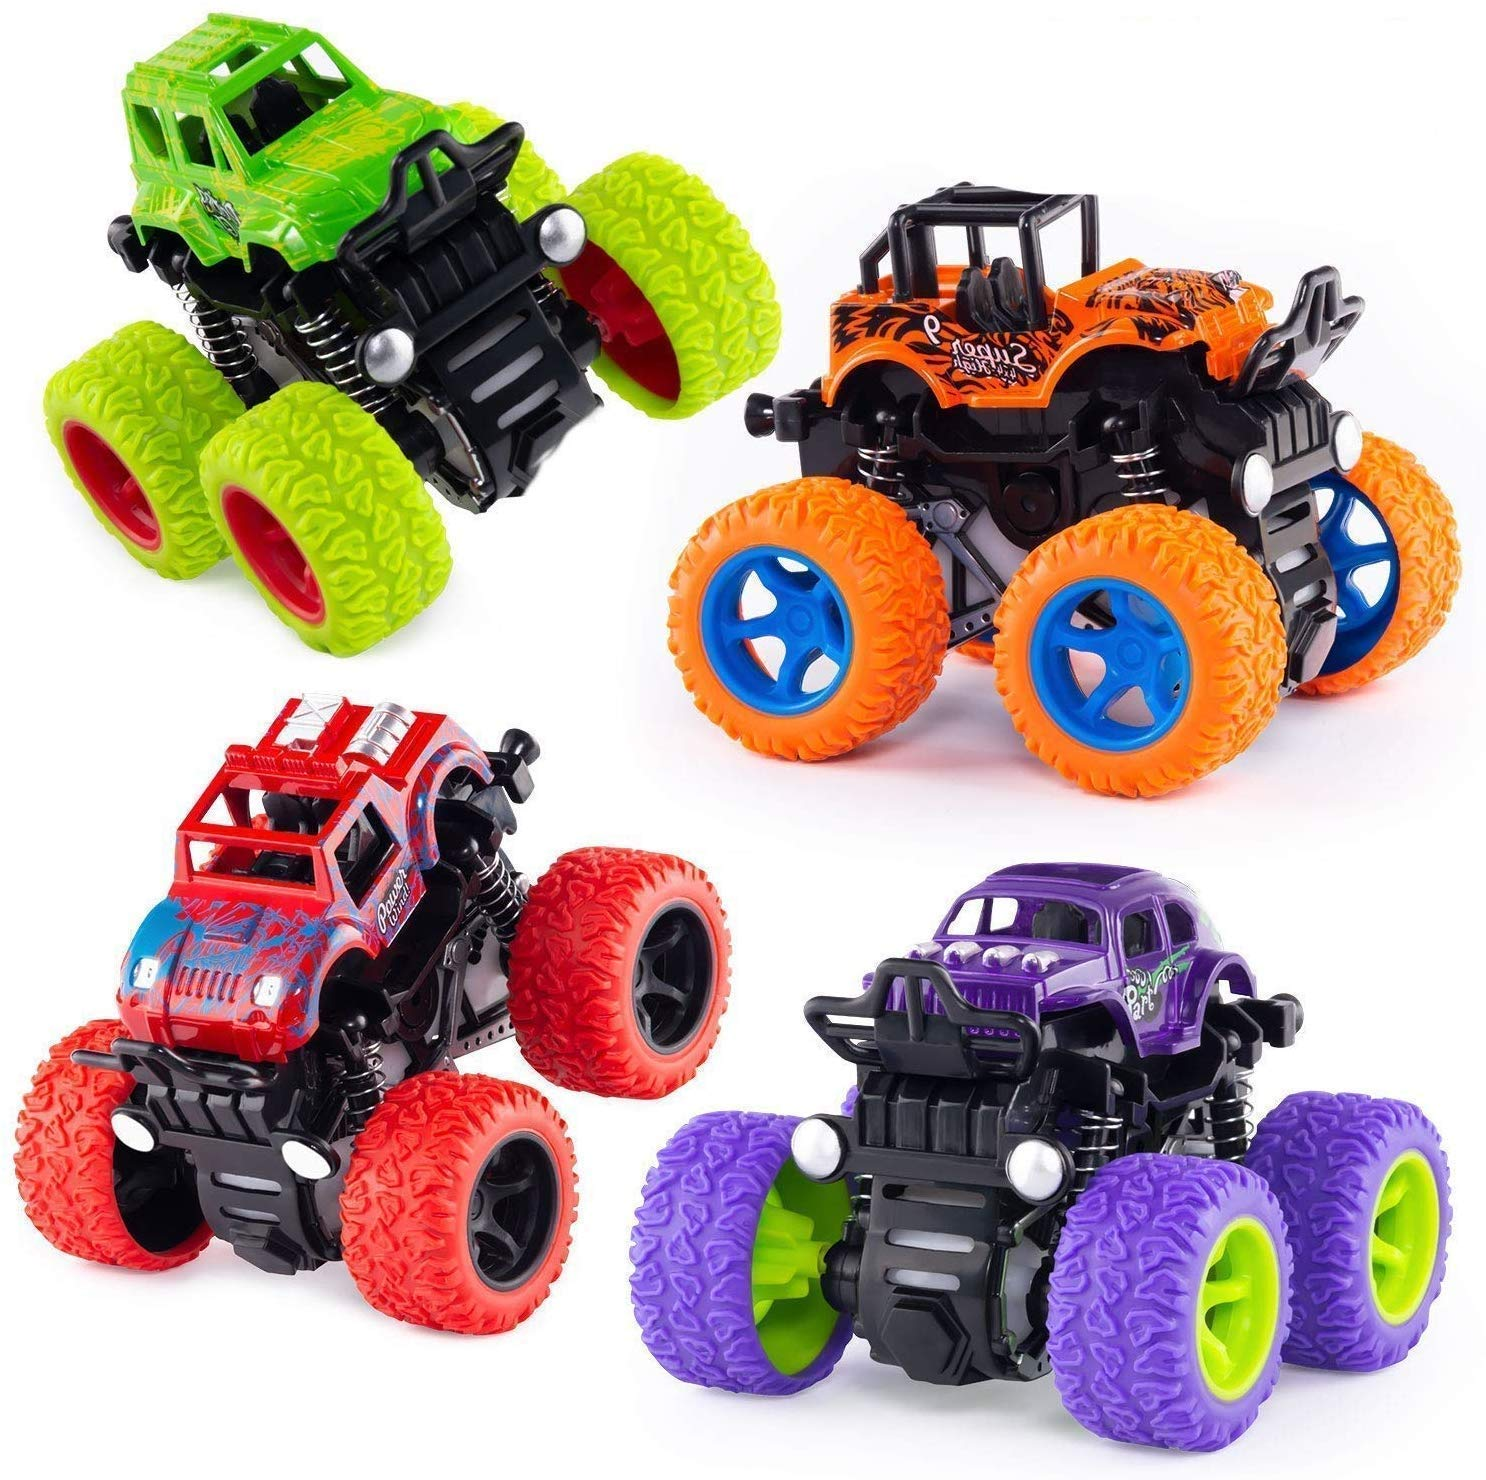 Push and Go Toy Trucks Friction Powered Cars 4 Wheel Drive Vehicles for Toddlers Children Boys Girls Kids Gift-4PCS